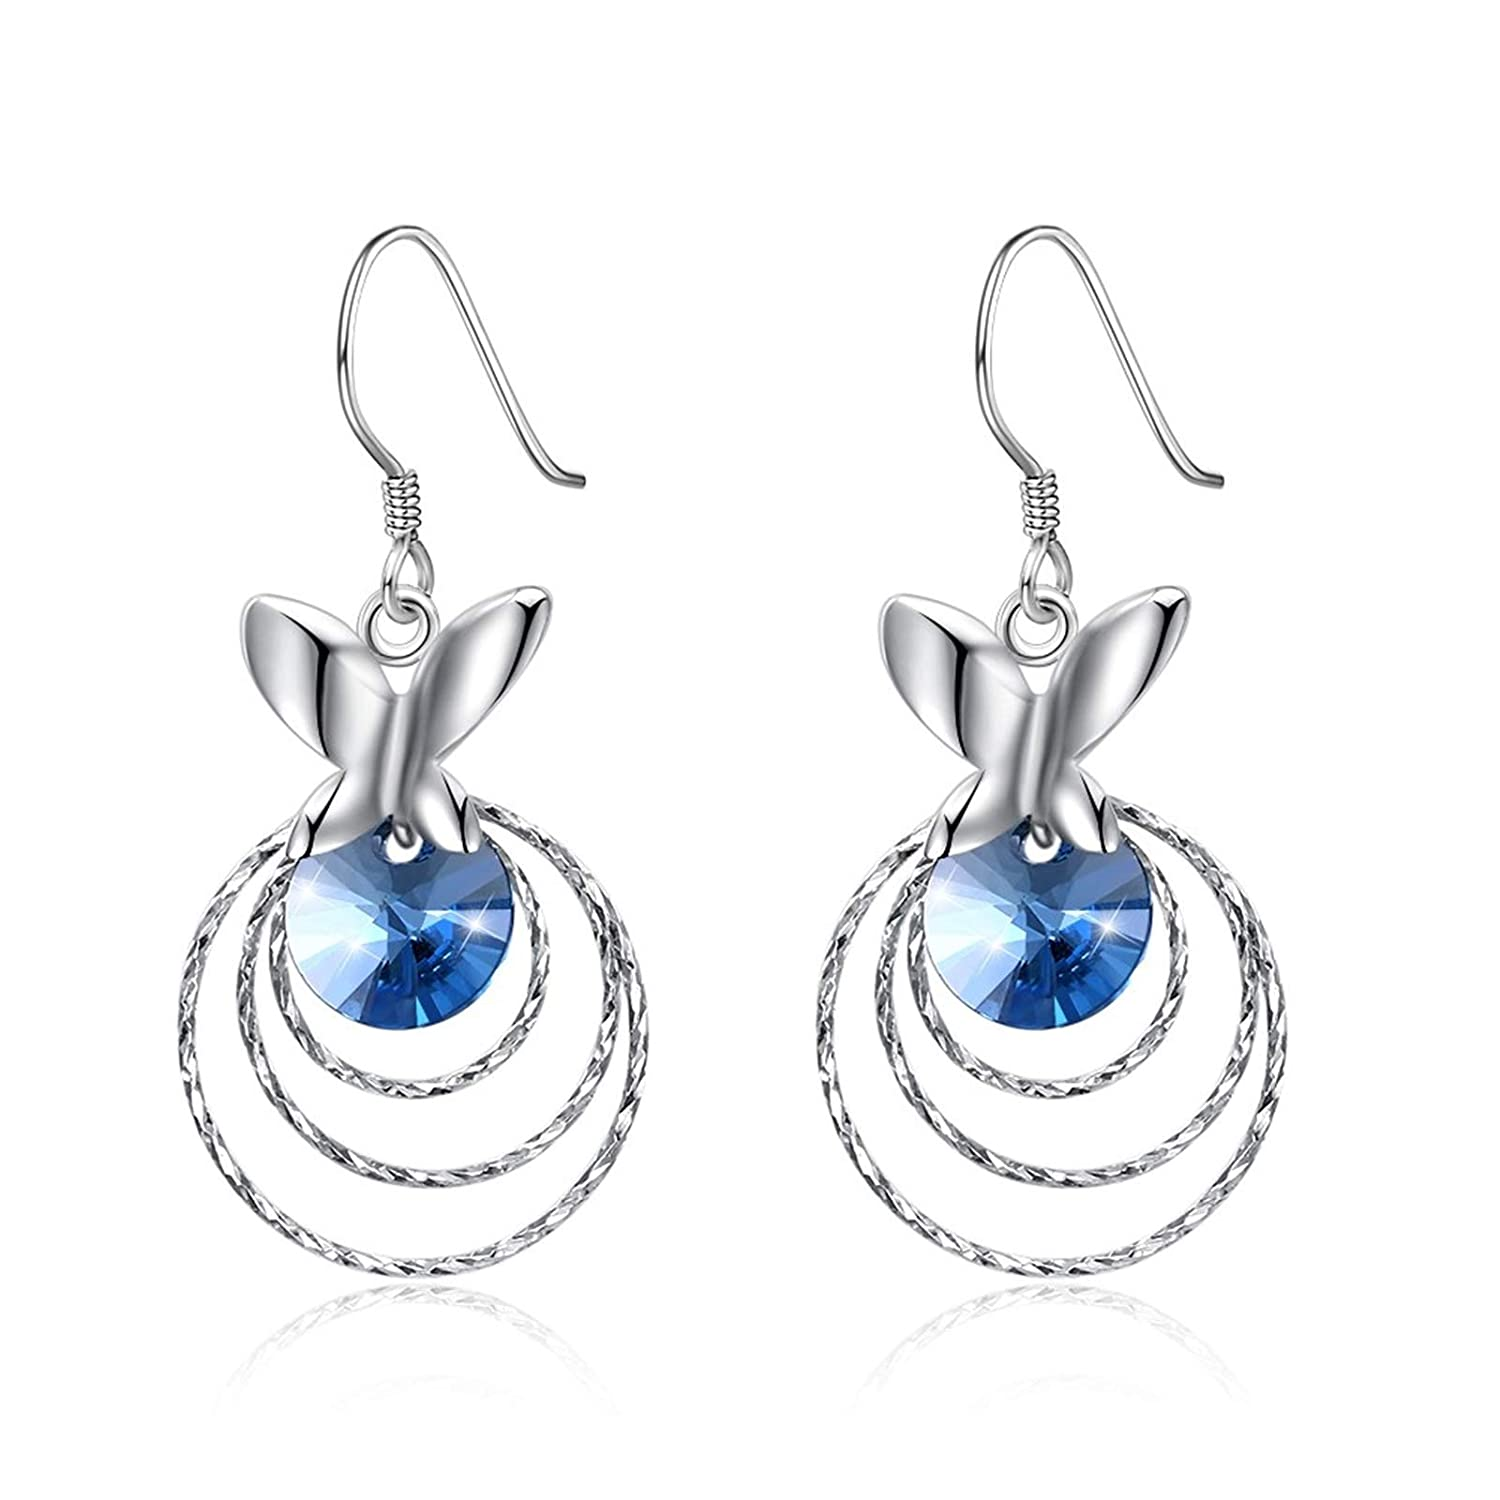 Adisaer Silver Plated Drop Earrings Rhinestone Fashion Round Blue Crystals Butterfly Earrings For Women Girls